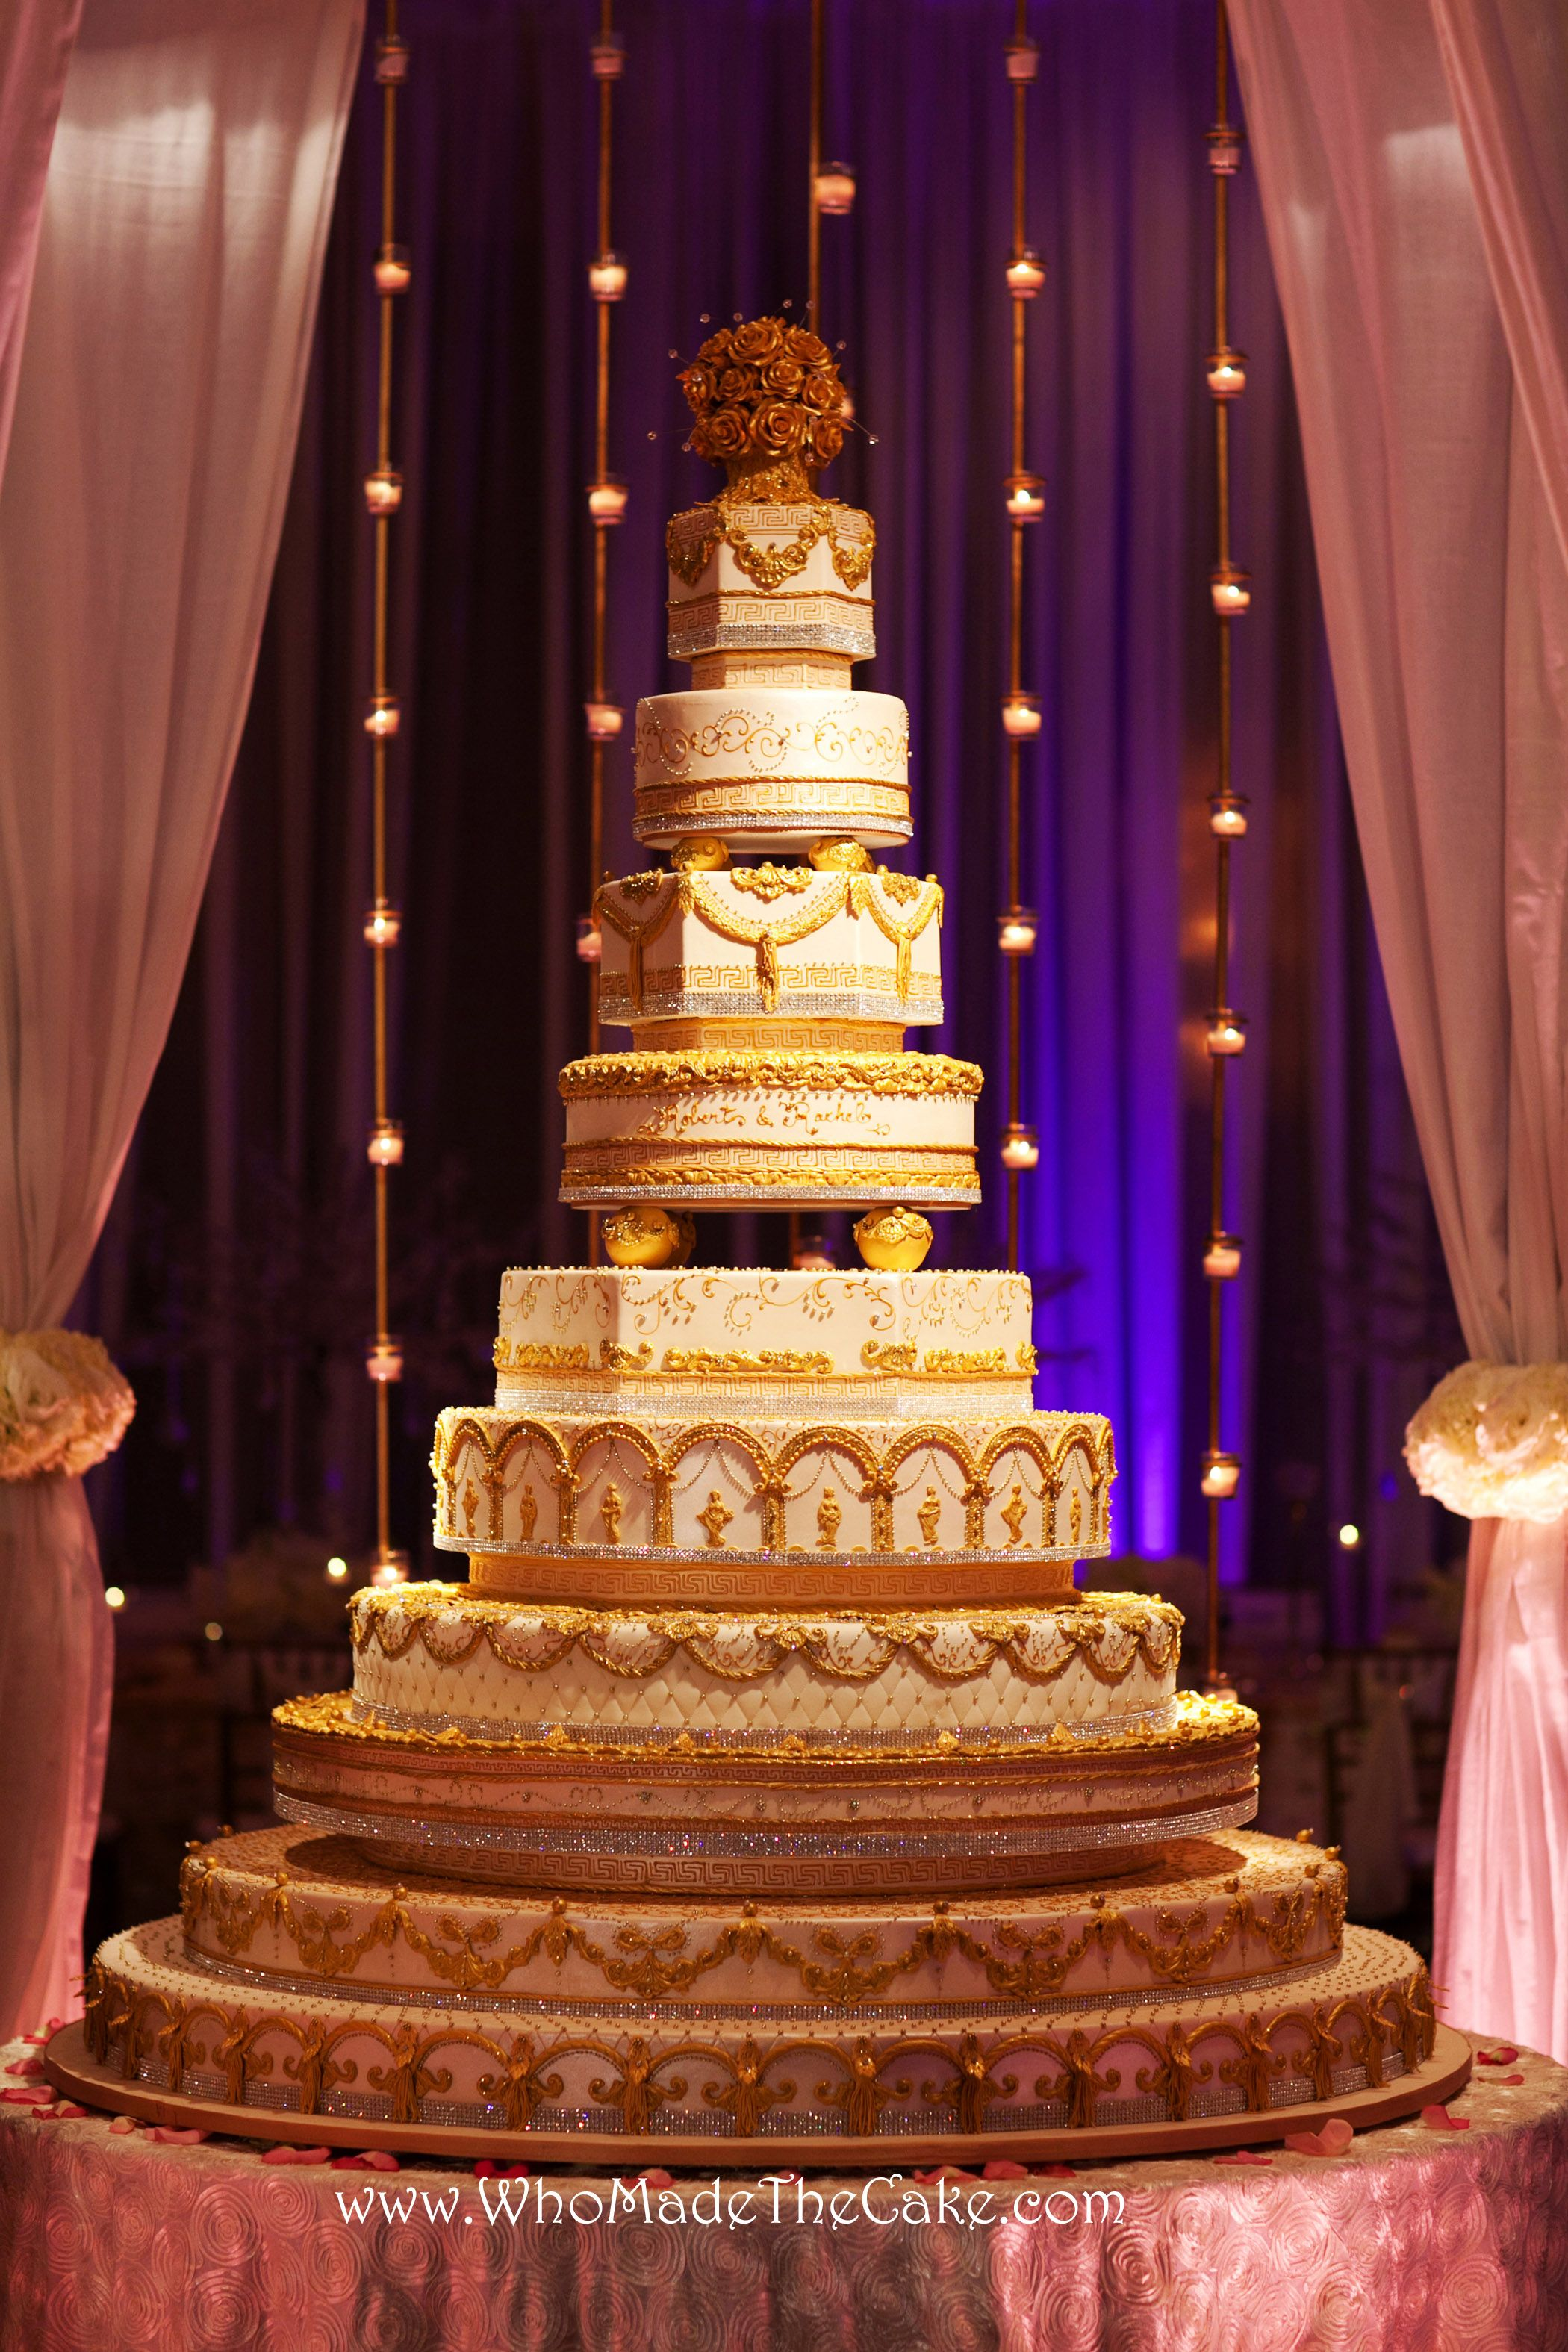 This Versace Inspired Wedding Cake Had A 60 Base Tier